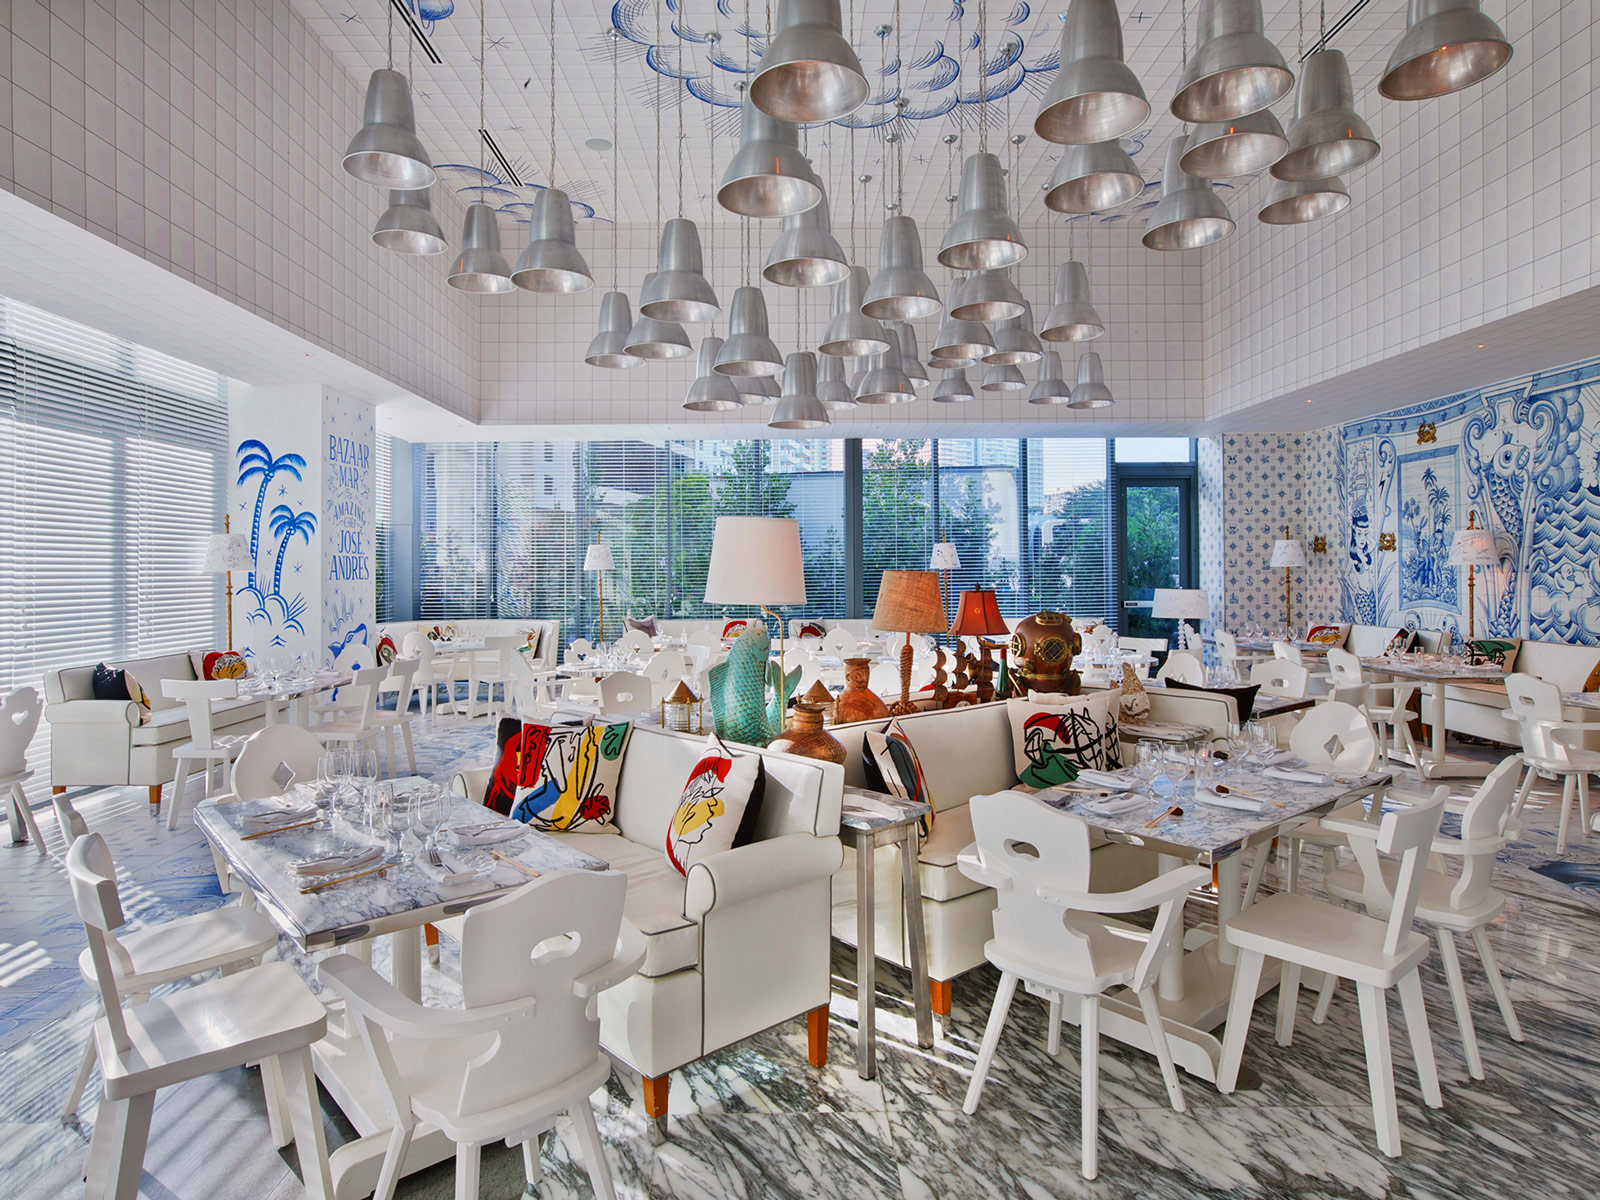 Philippe Starck Designs A Surreal Nautical Interior For